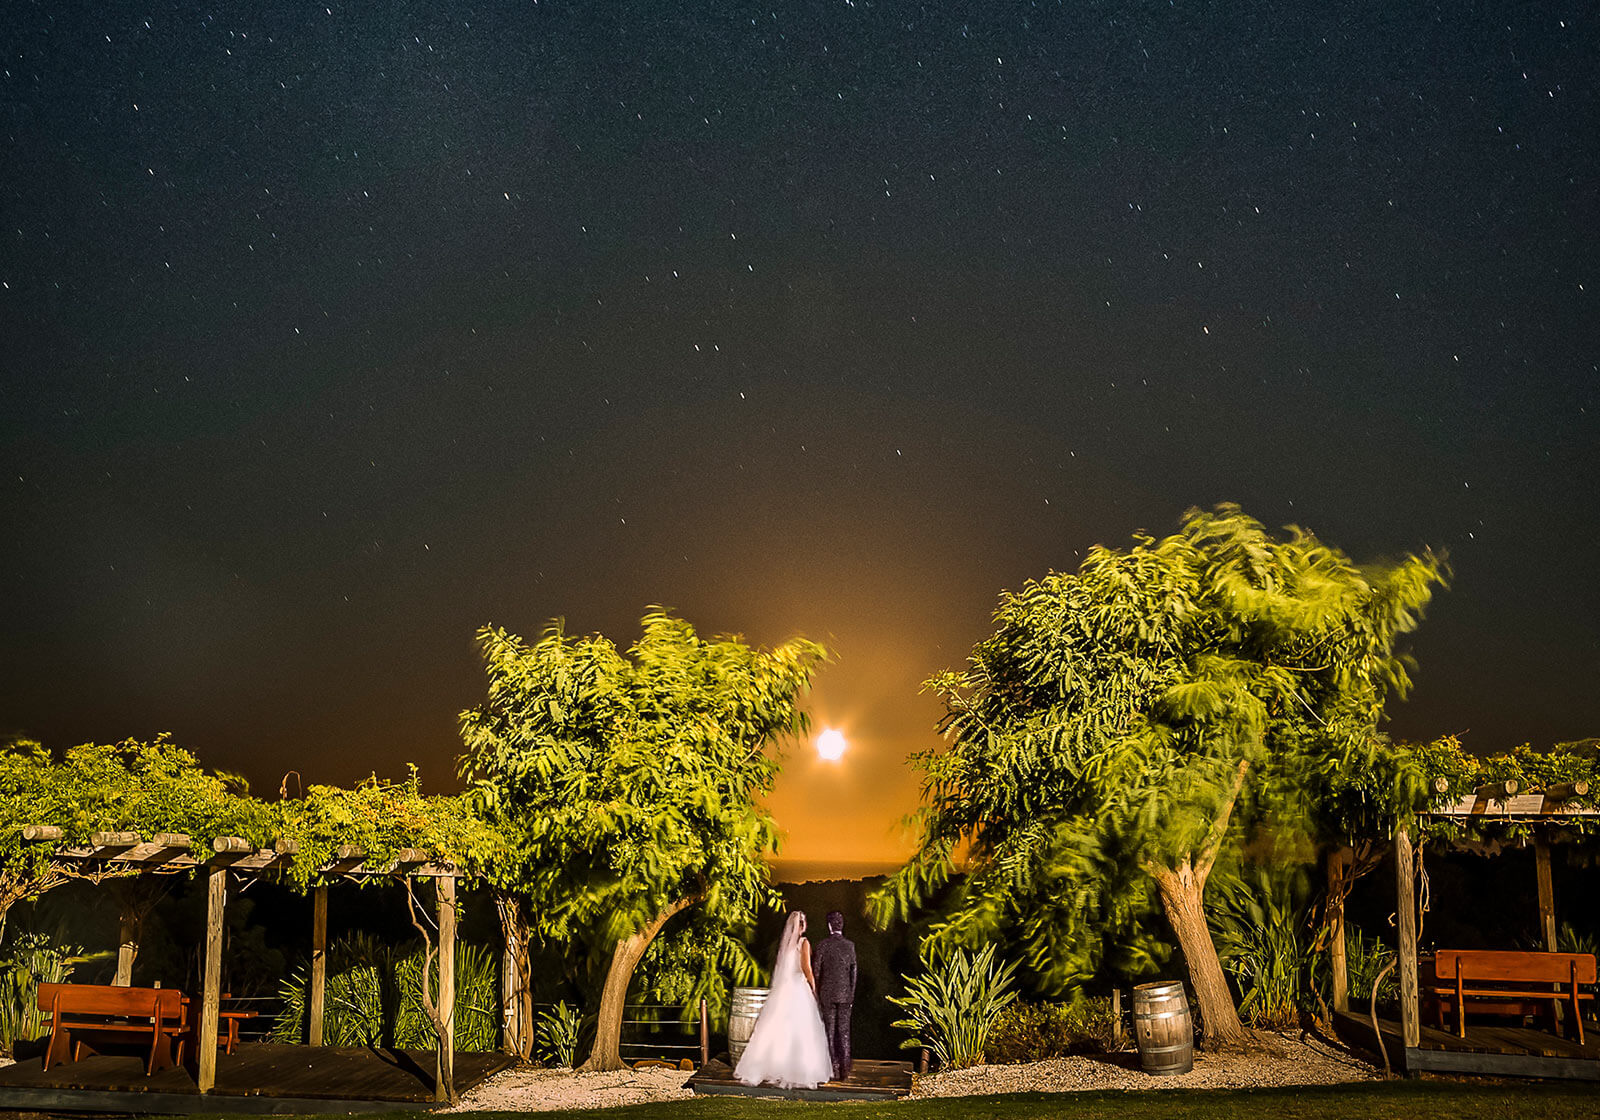 Wise Wines, Dunsborough Wedding Photography by Peter Adams-Shawn